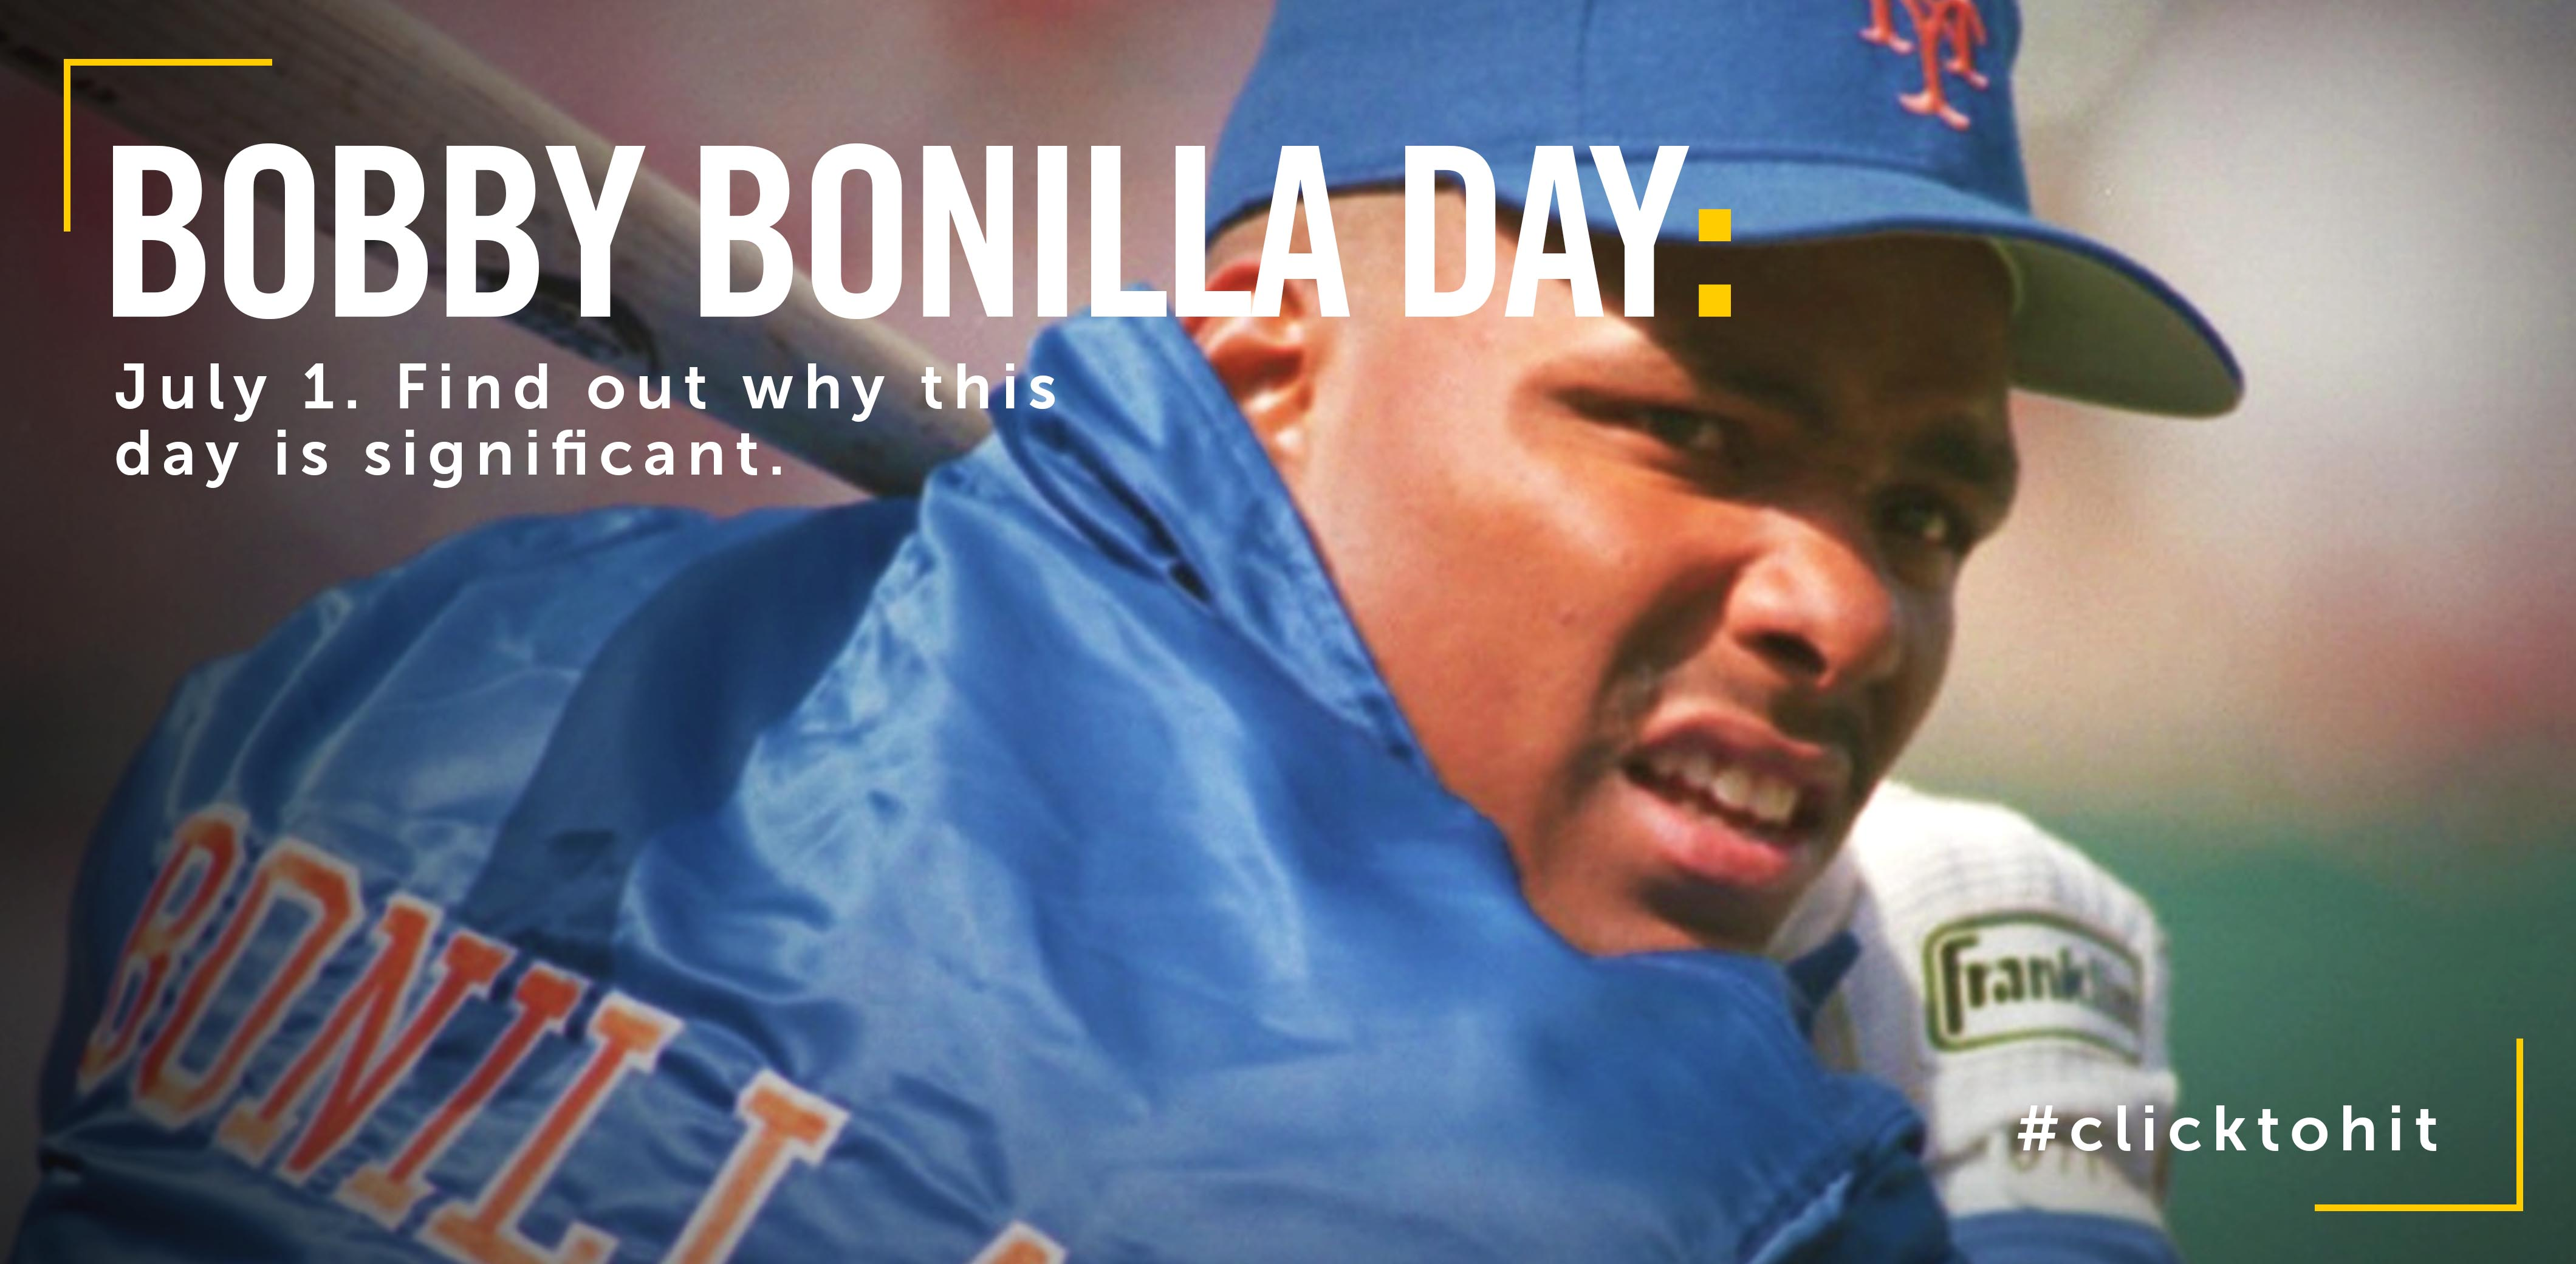 What is Bobby Bonilla Day